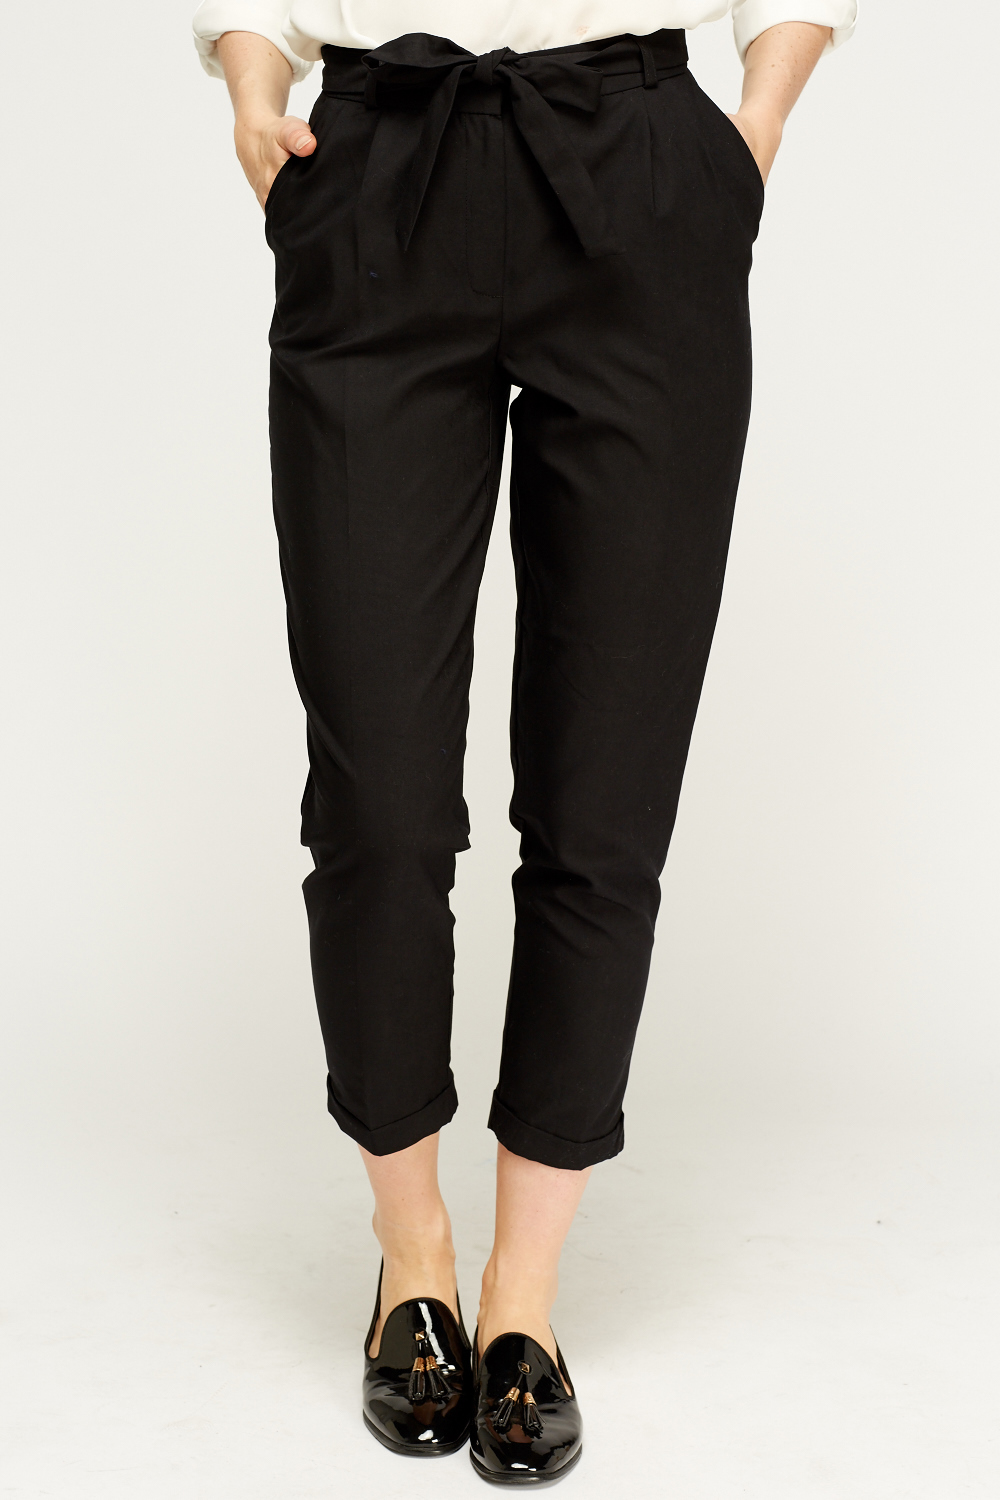 Women's Yellow High-waist Cotton Track Trousers $ From Farfetch Price last checked 15 hours ago Product prices and availability are accurate as of the date/time indicated and are subject to change.